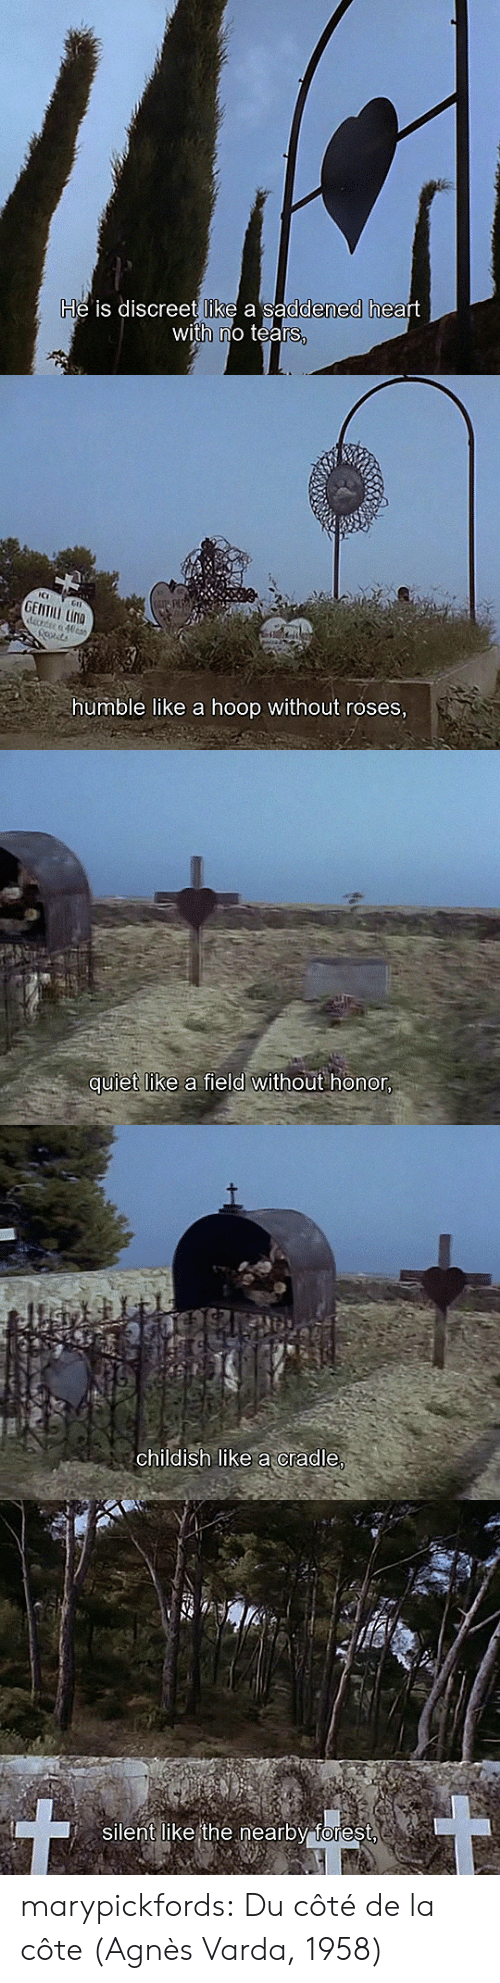 Childish: He is discreet like a saddened heart  with no tears,   GENTILL LINA  drde 40ta  humble like a hoop without roses,   quiet like a field without honor,   childish like acradle,   silent like the nearby forest marypickfords: Du côté de la côte (Agnès Varda, 1958)